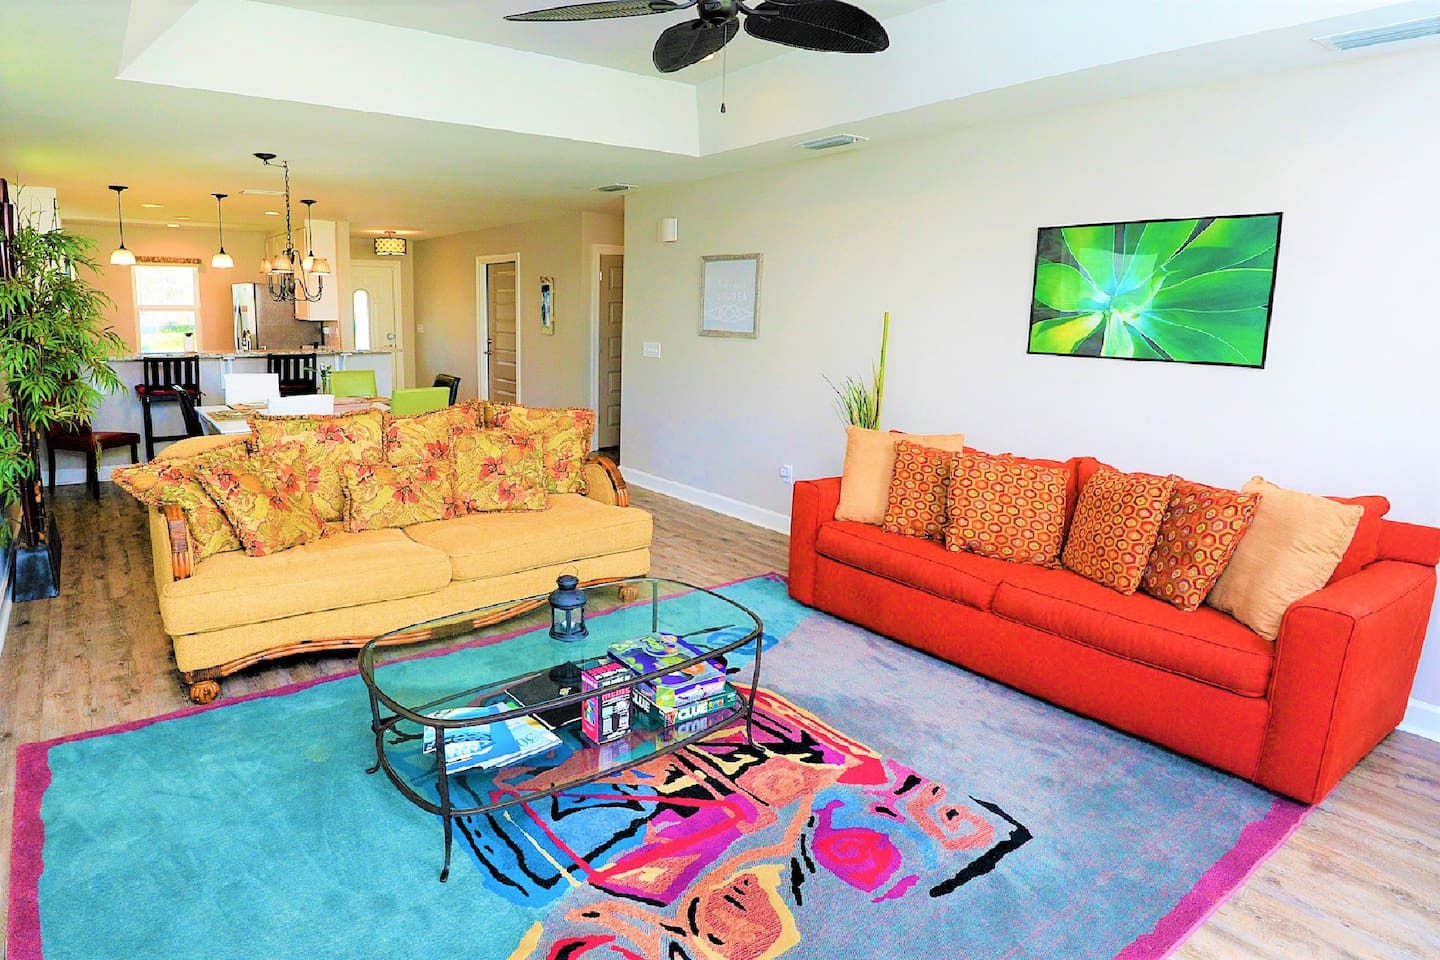 1400 interior square feet goes a long way. That's over 5 times the space of a typical hotel room. Add in the 2 covered porches and private backyard and you've got yourself a vacation home at the beach!